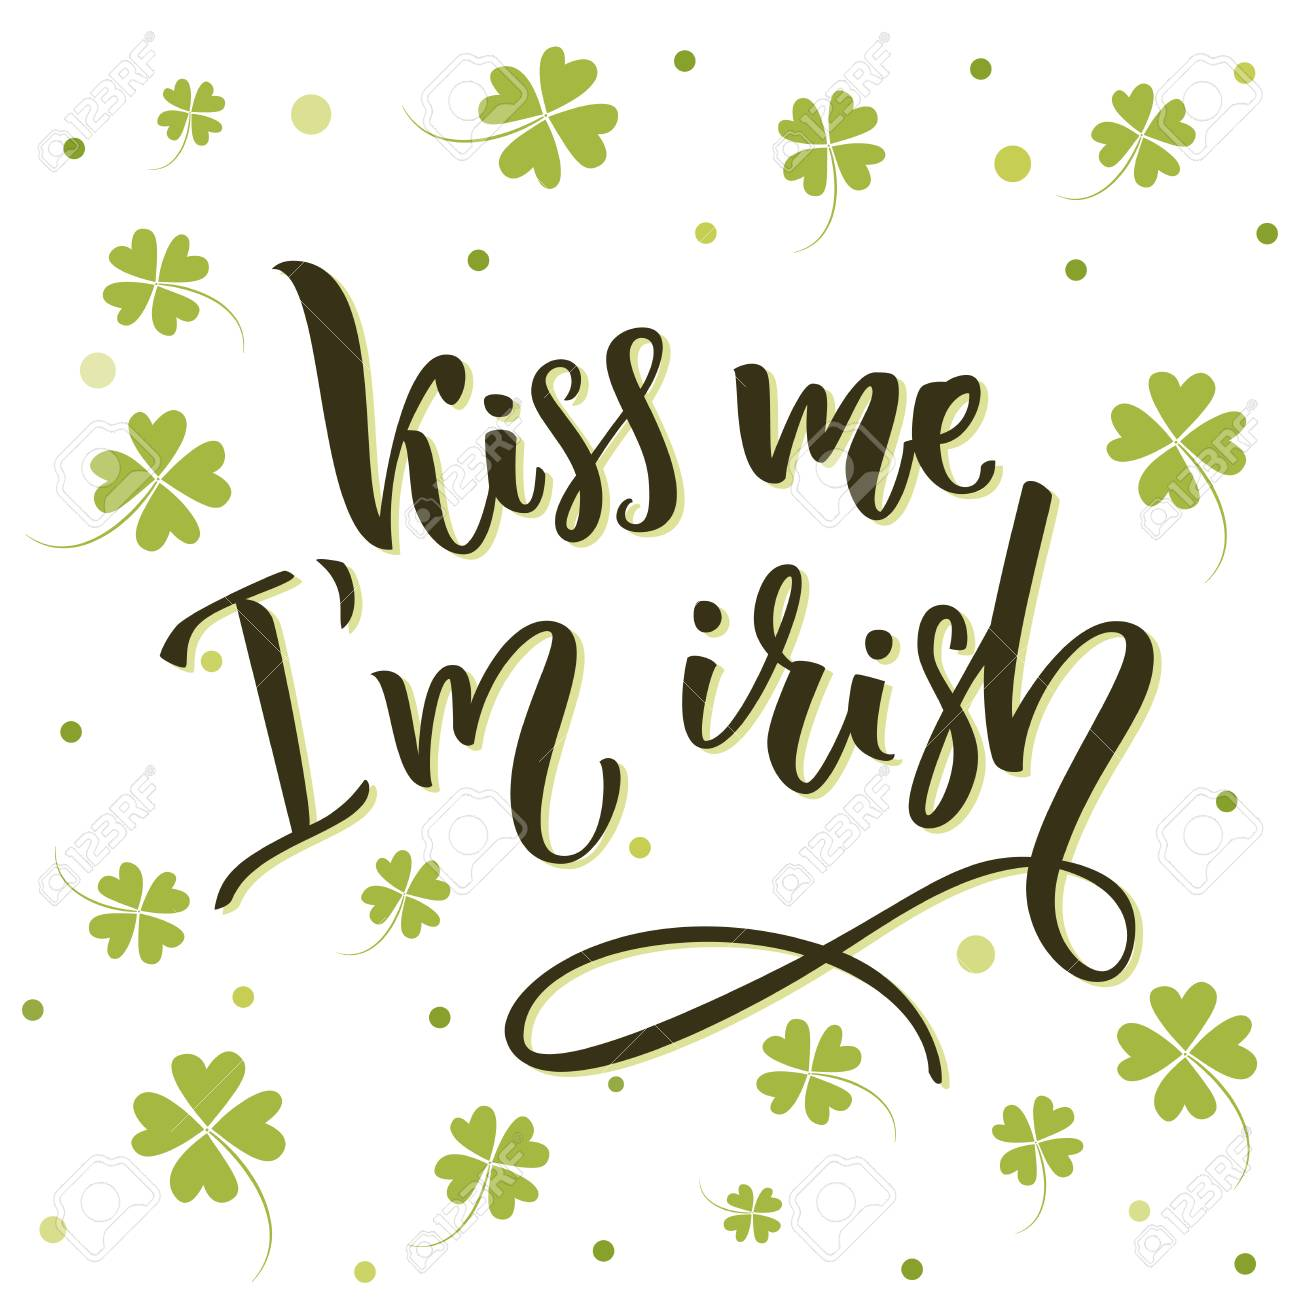 Funny St. Patrick's Day Quote For T shirts And Cards At Four leaf